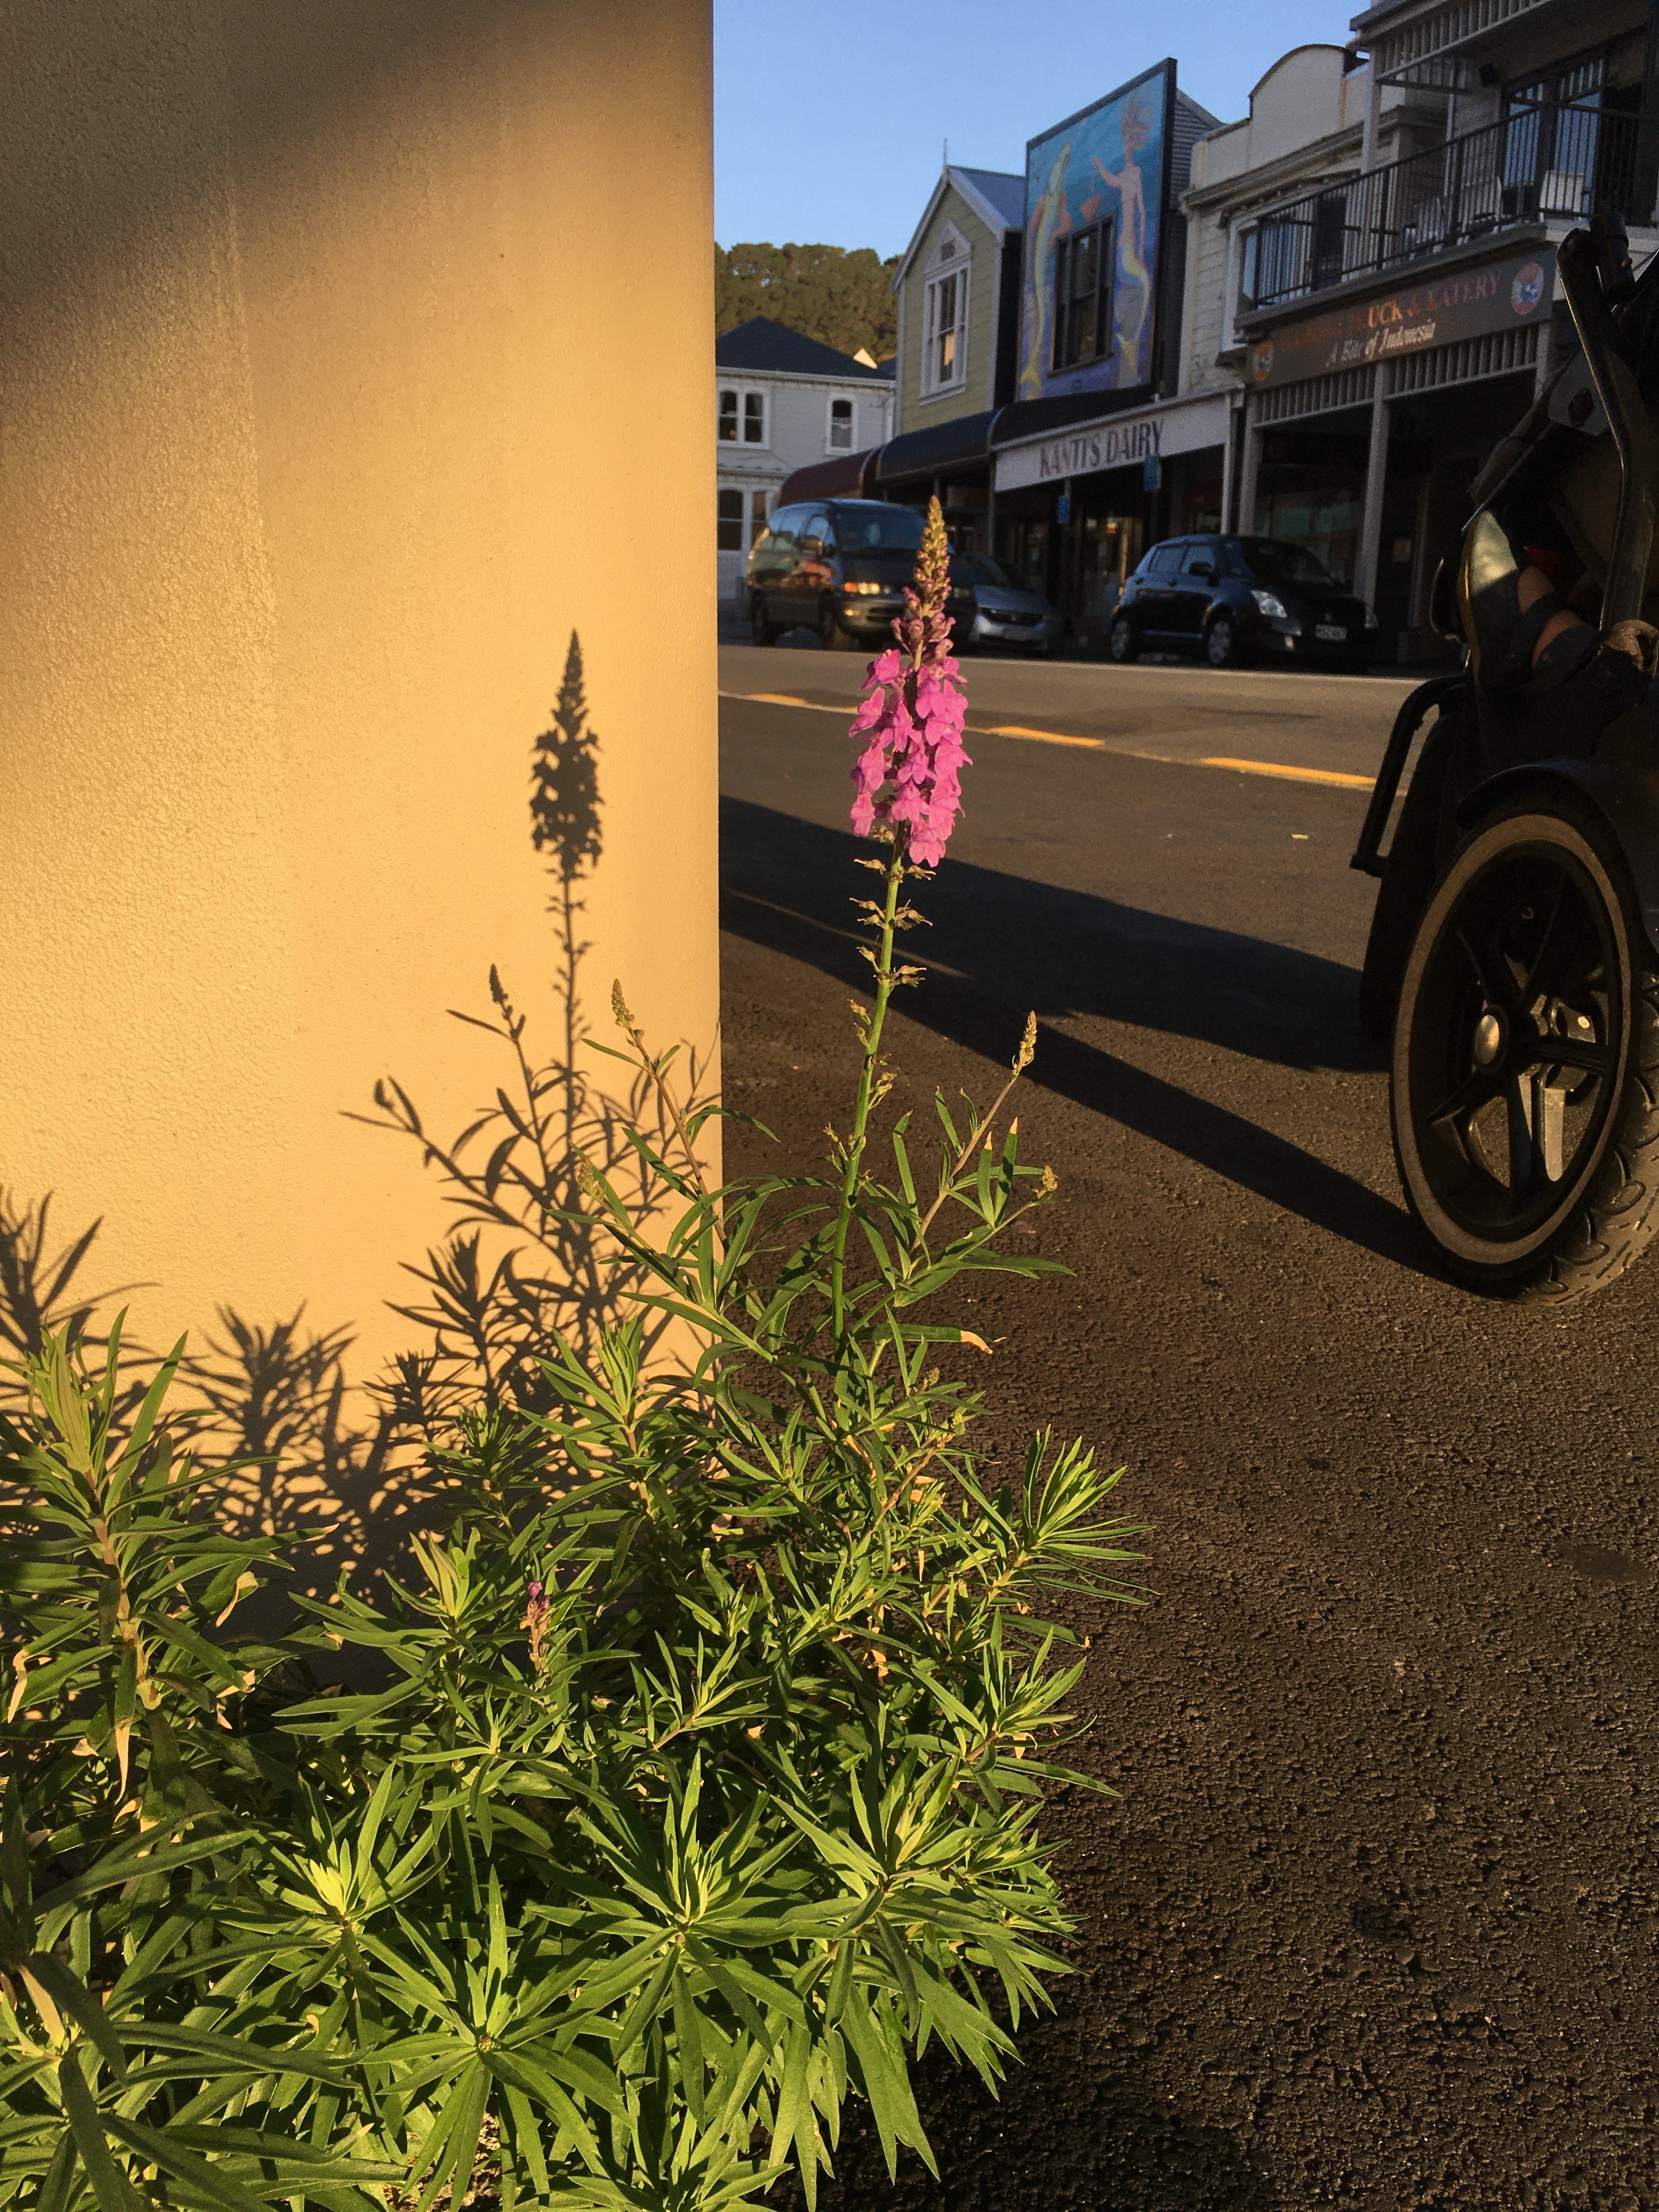 A purple flower and it's long shadow on a concrete wall, in the evening lowlight. A baby stroller in the background.